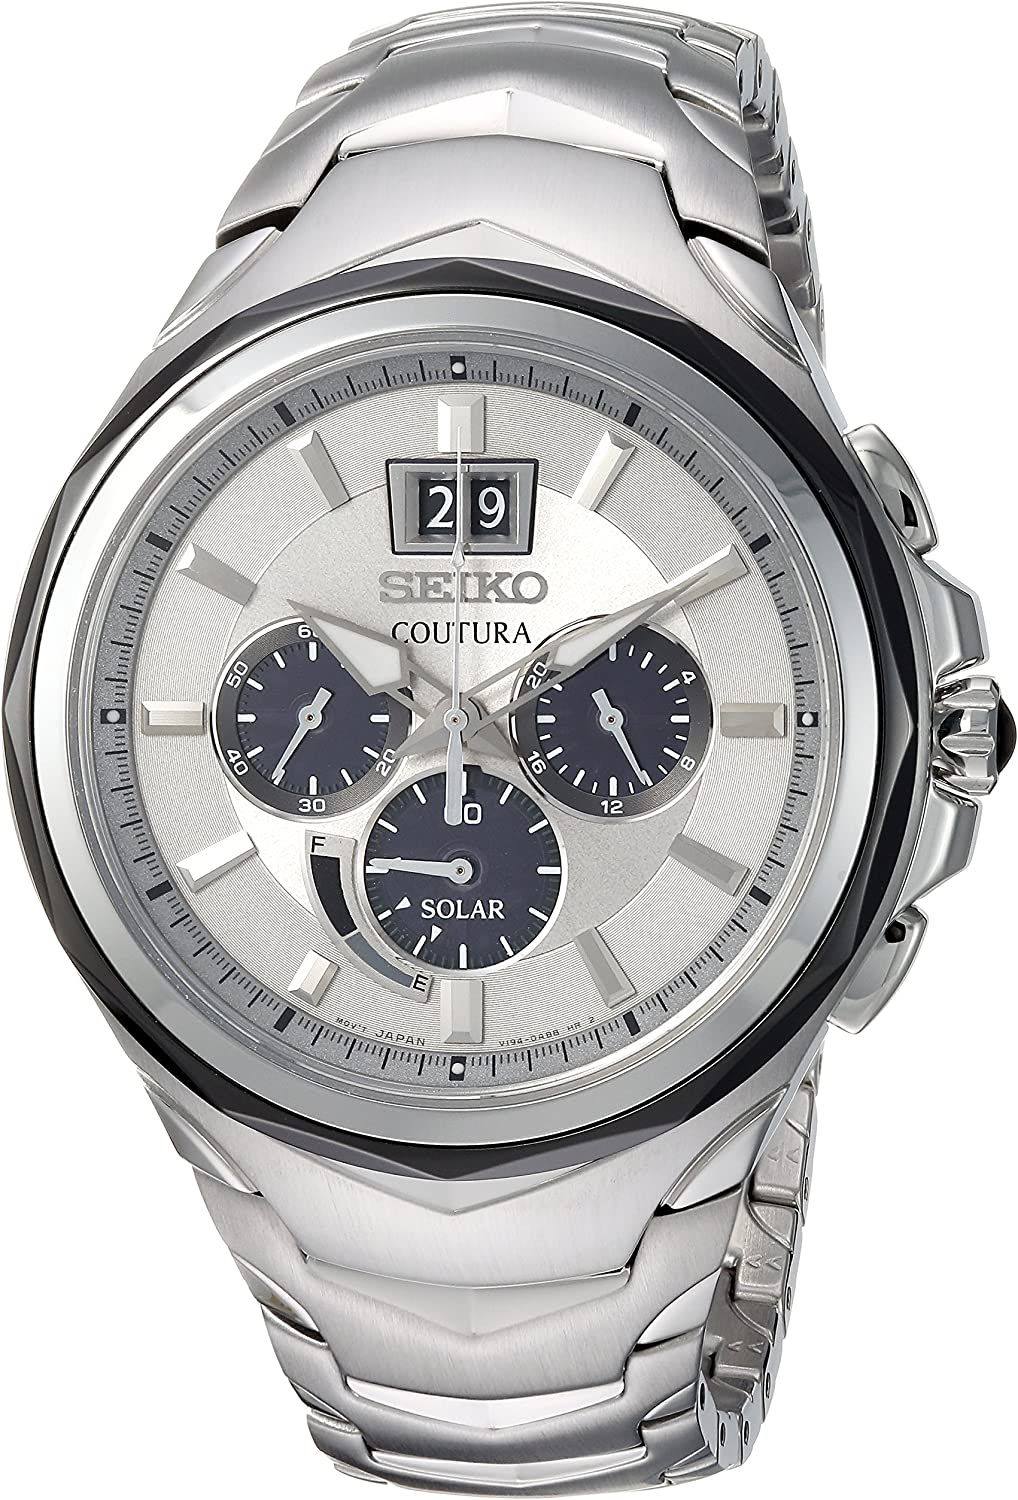 Seiko Men s Coutura Stainless Steel Big Date Date Chronograph Watch